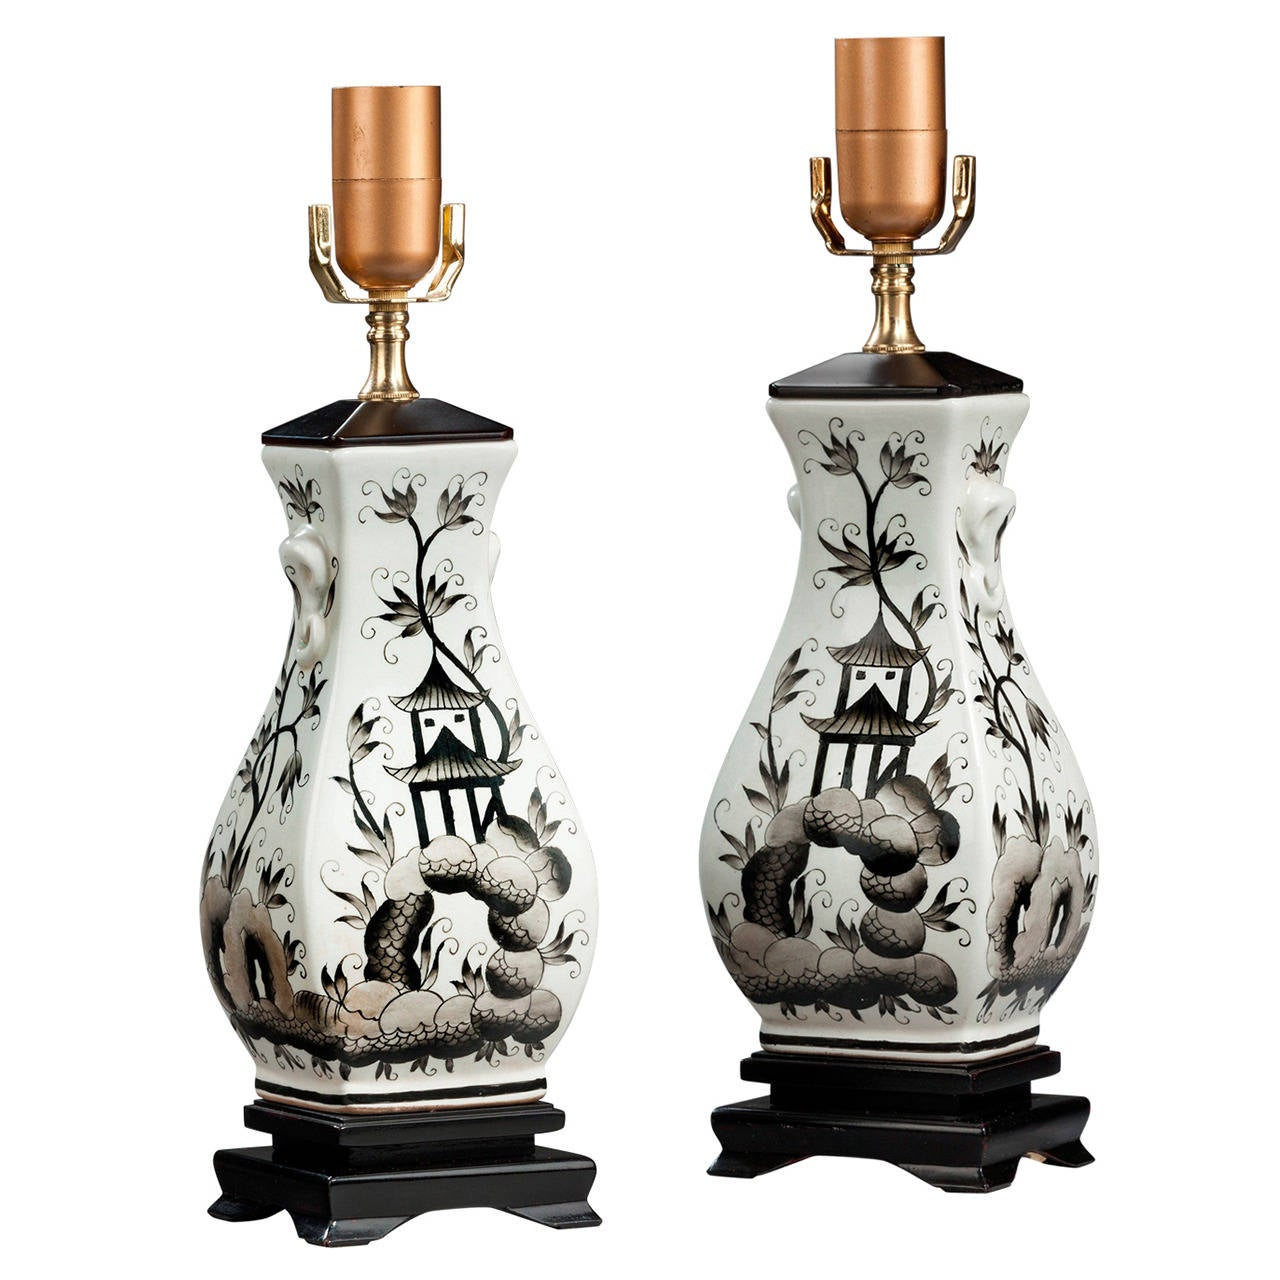 Pair of 20th century Ebonized Painted Lamps